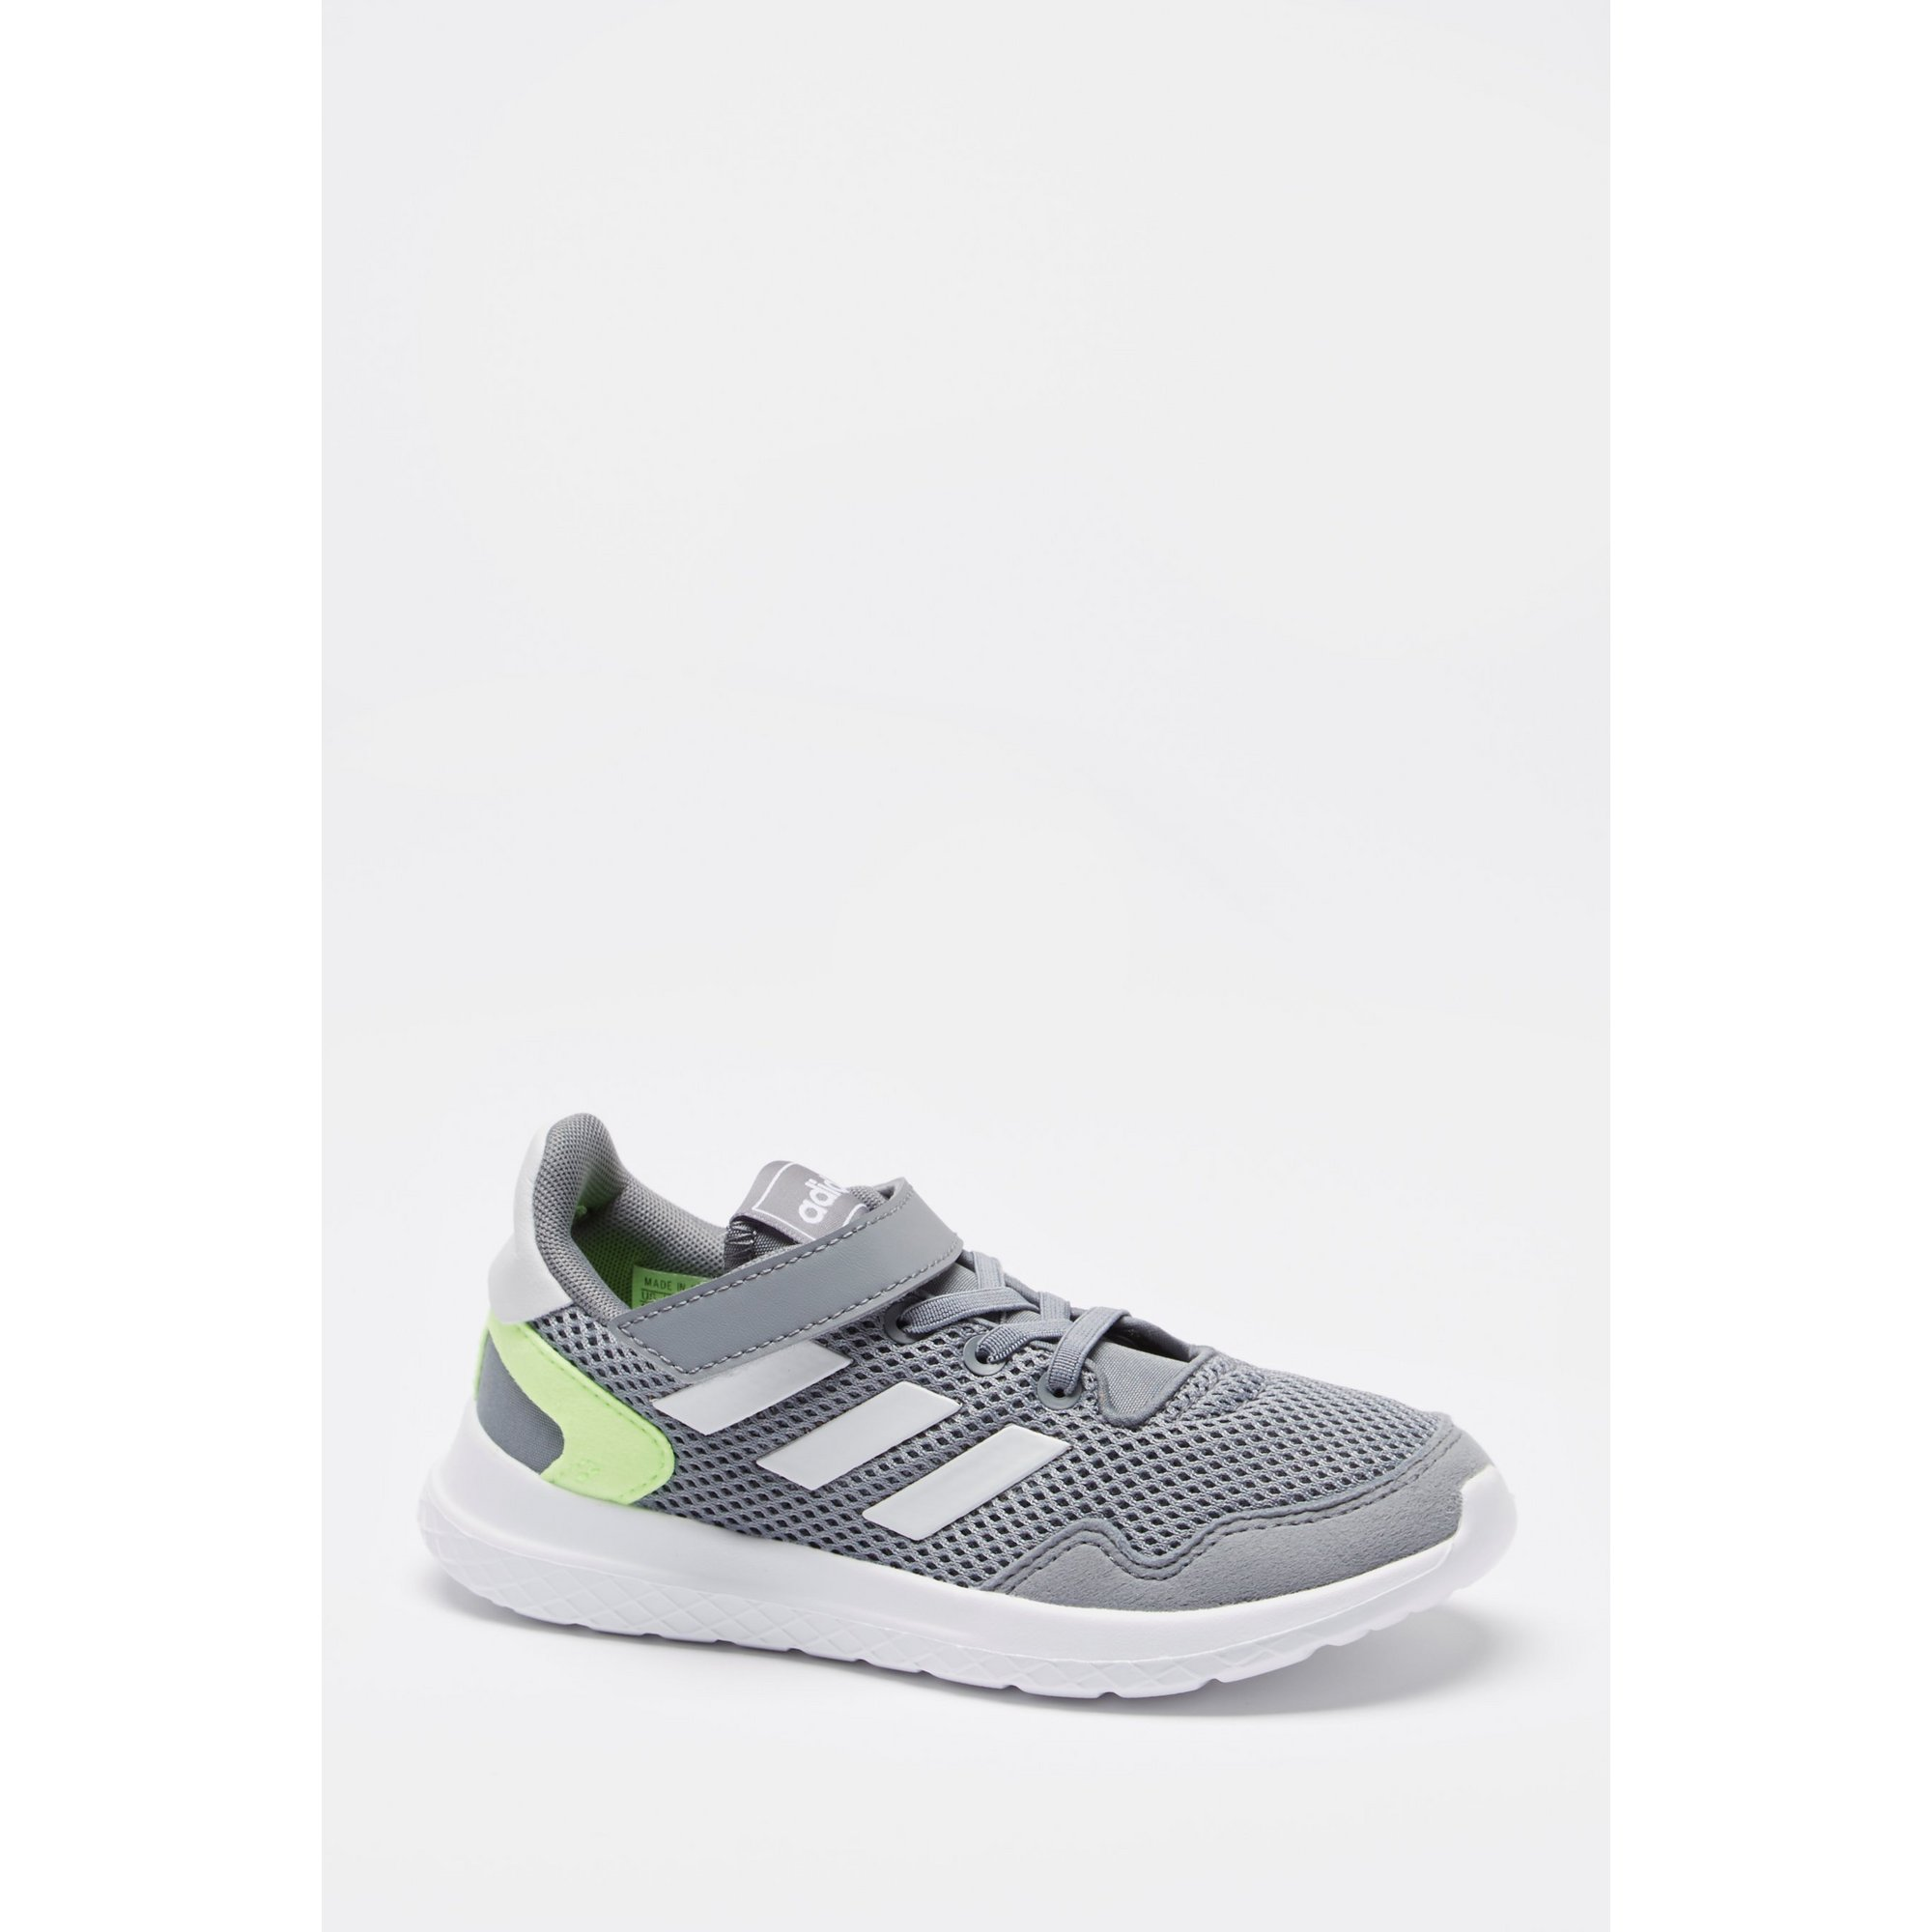 Image of adidas Archivo K Trainers